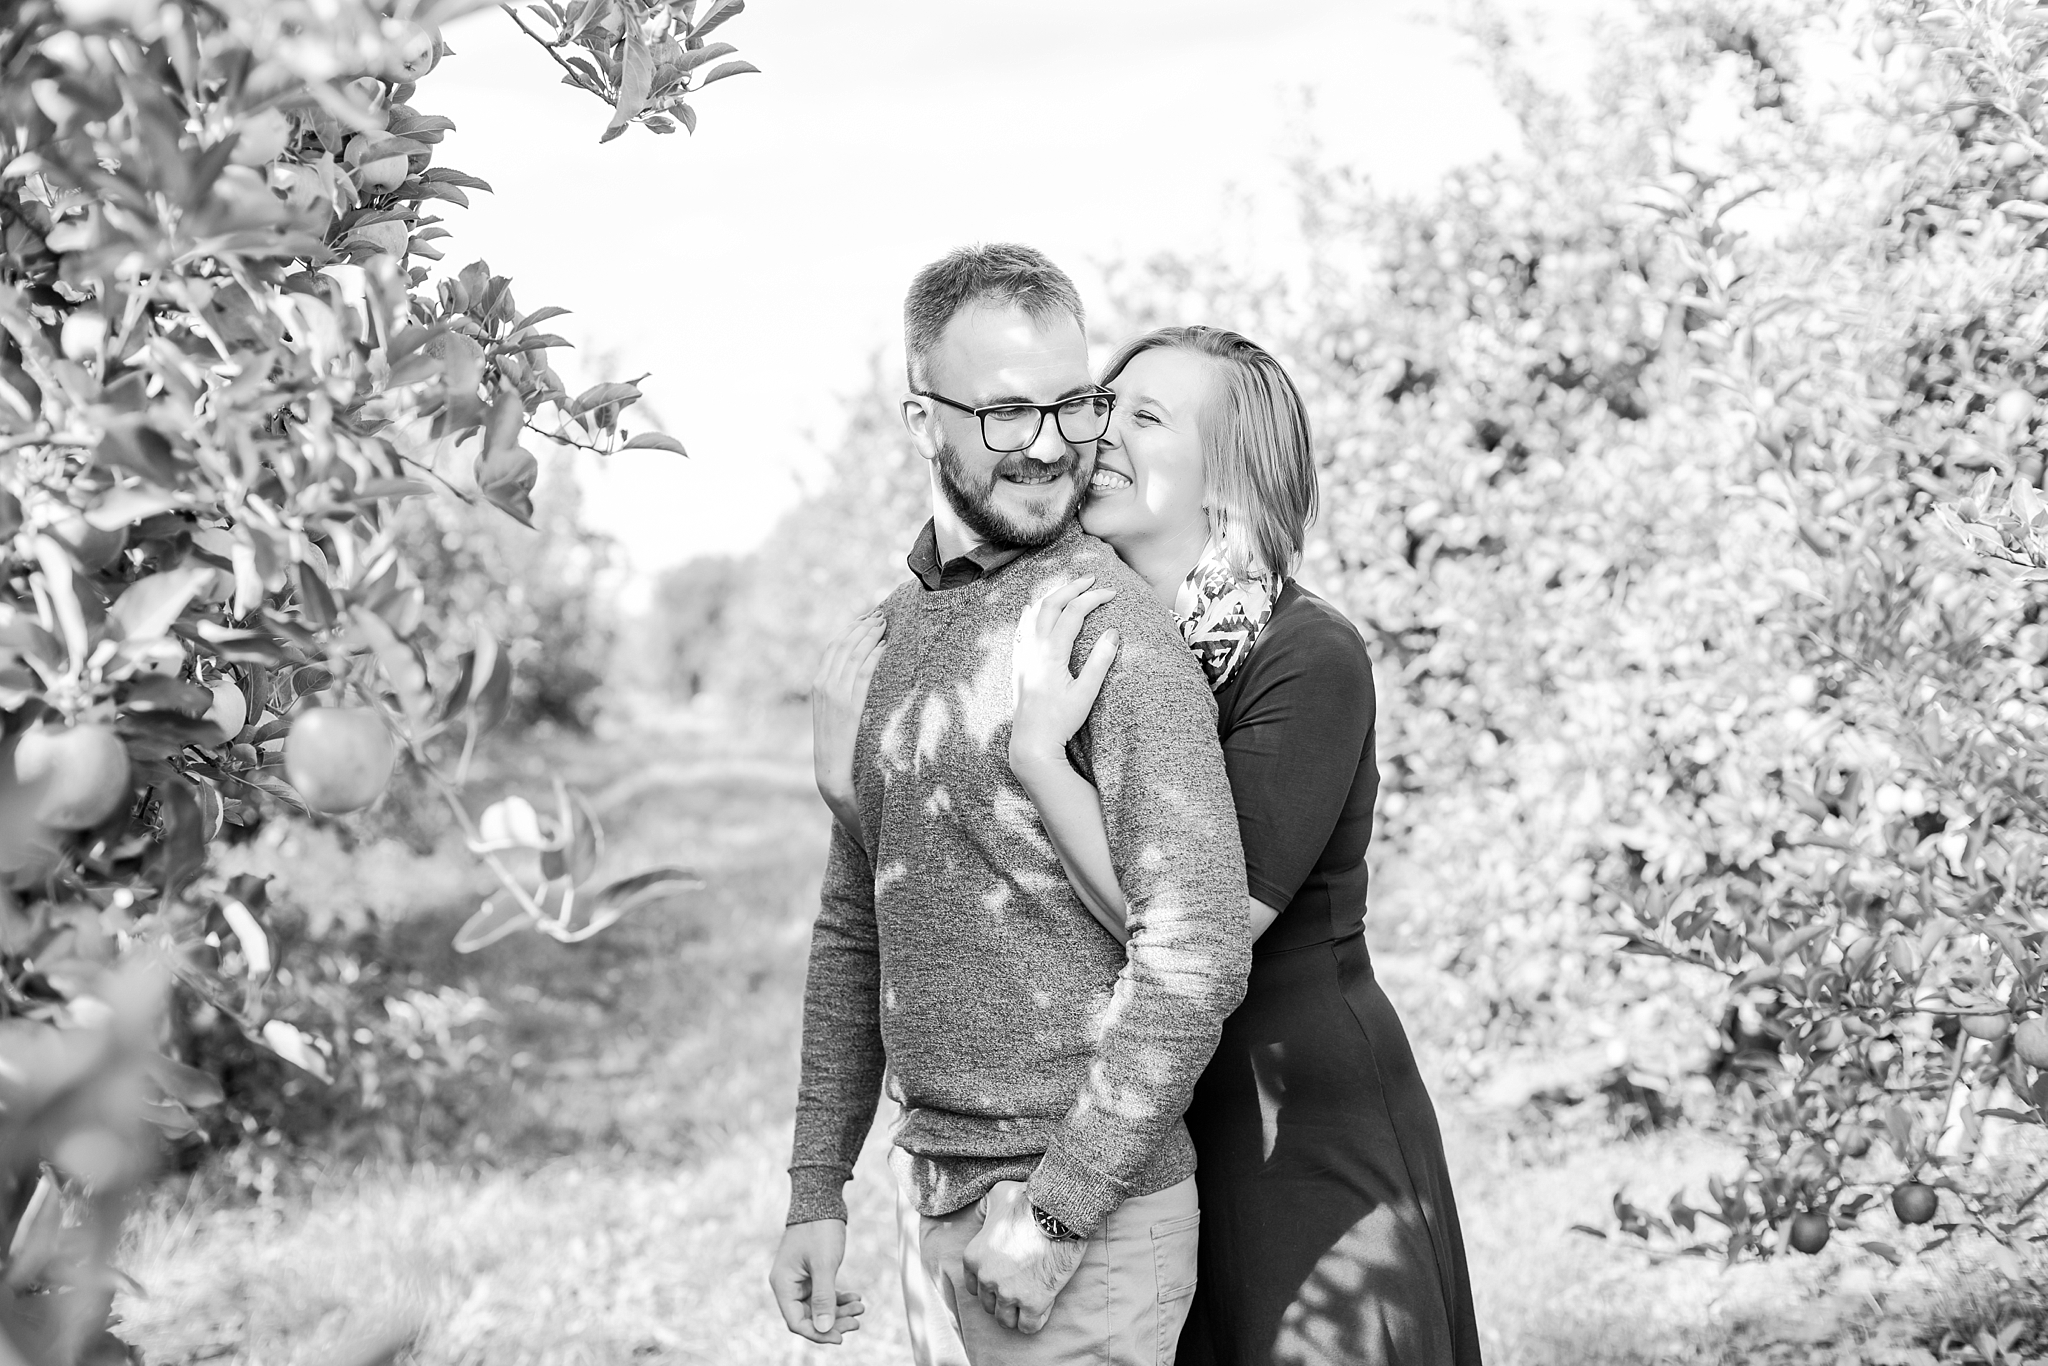 playful-fall-engagement-photos-at-hy's-cider-mill-ochard-in-bruce-township-michigan-by-courtney-carolyn-photography_0003.jpg